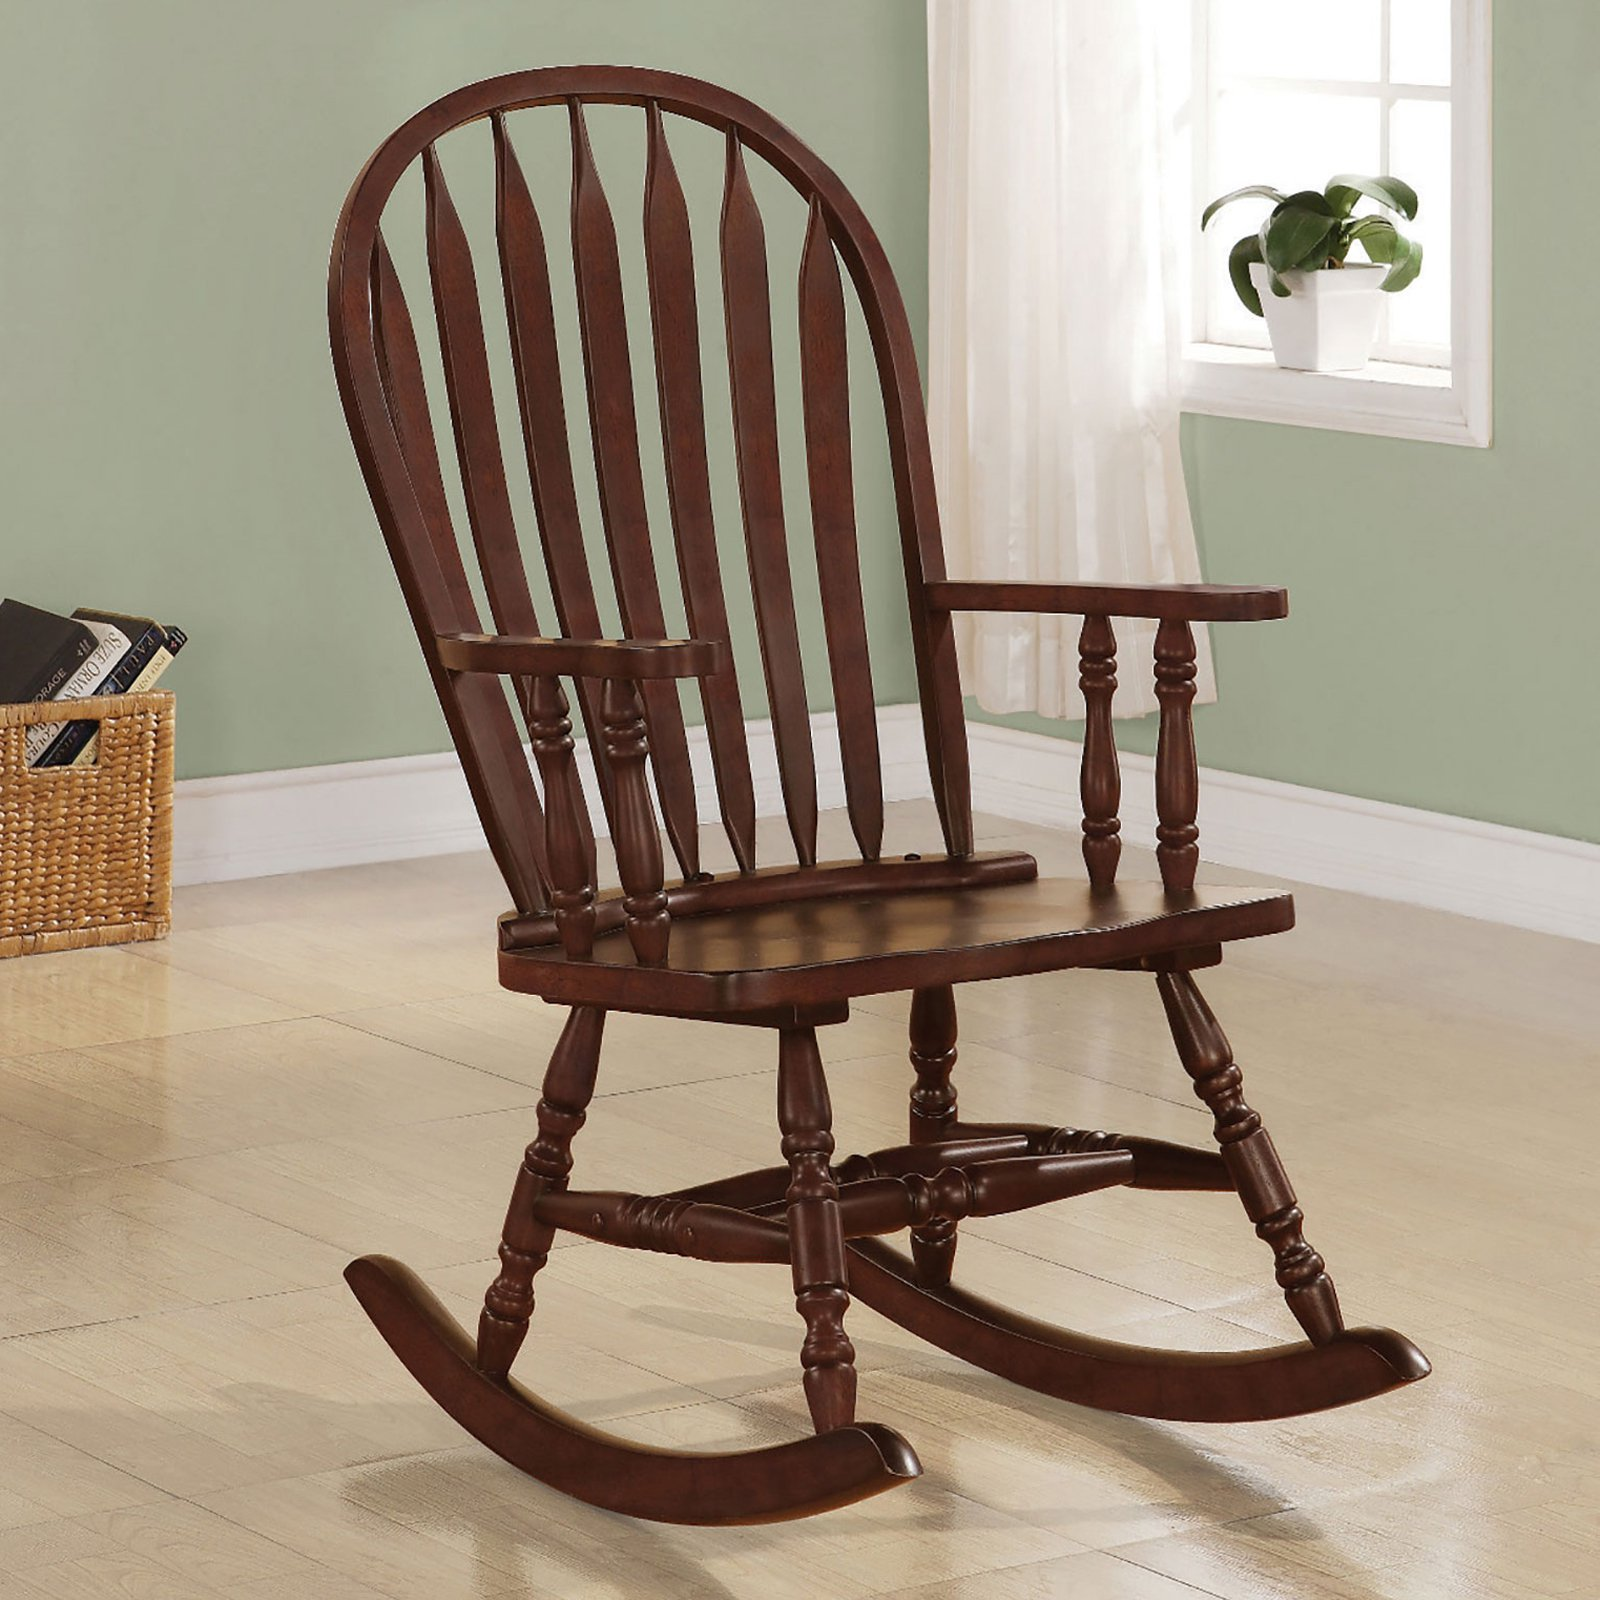 Arrow Windsor Back Rocking Chair, Cappuccino by Monarch Specialties Inc